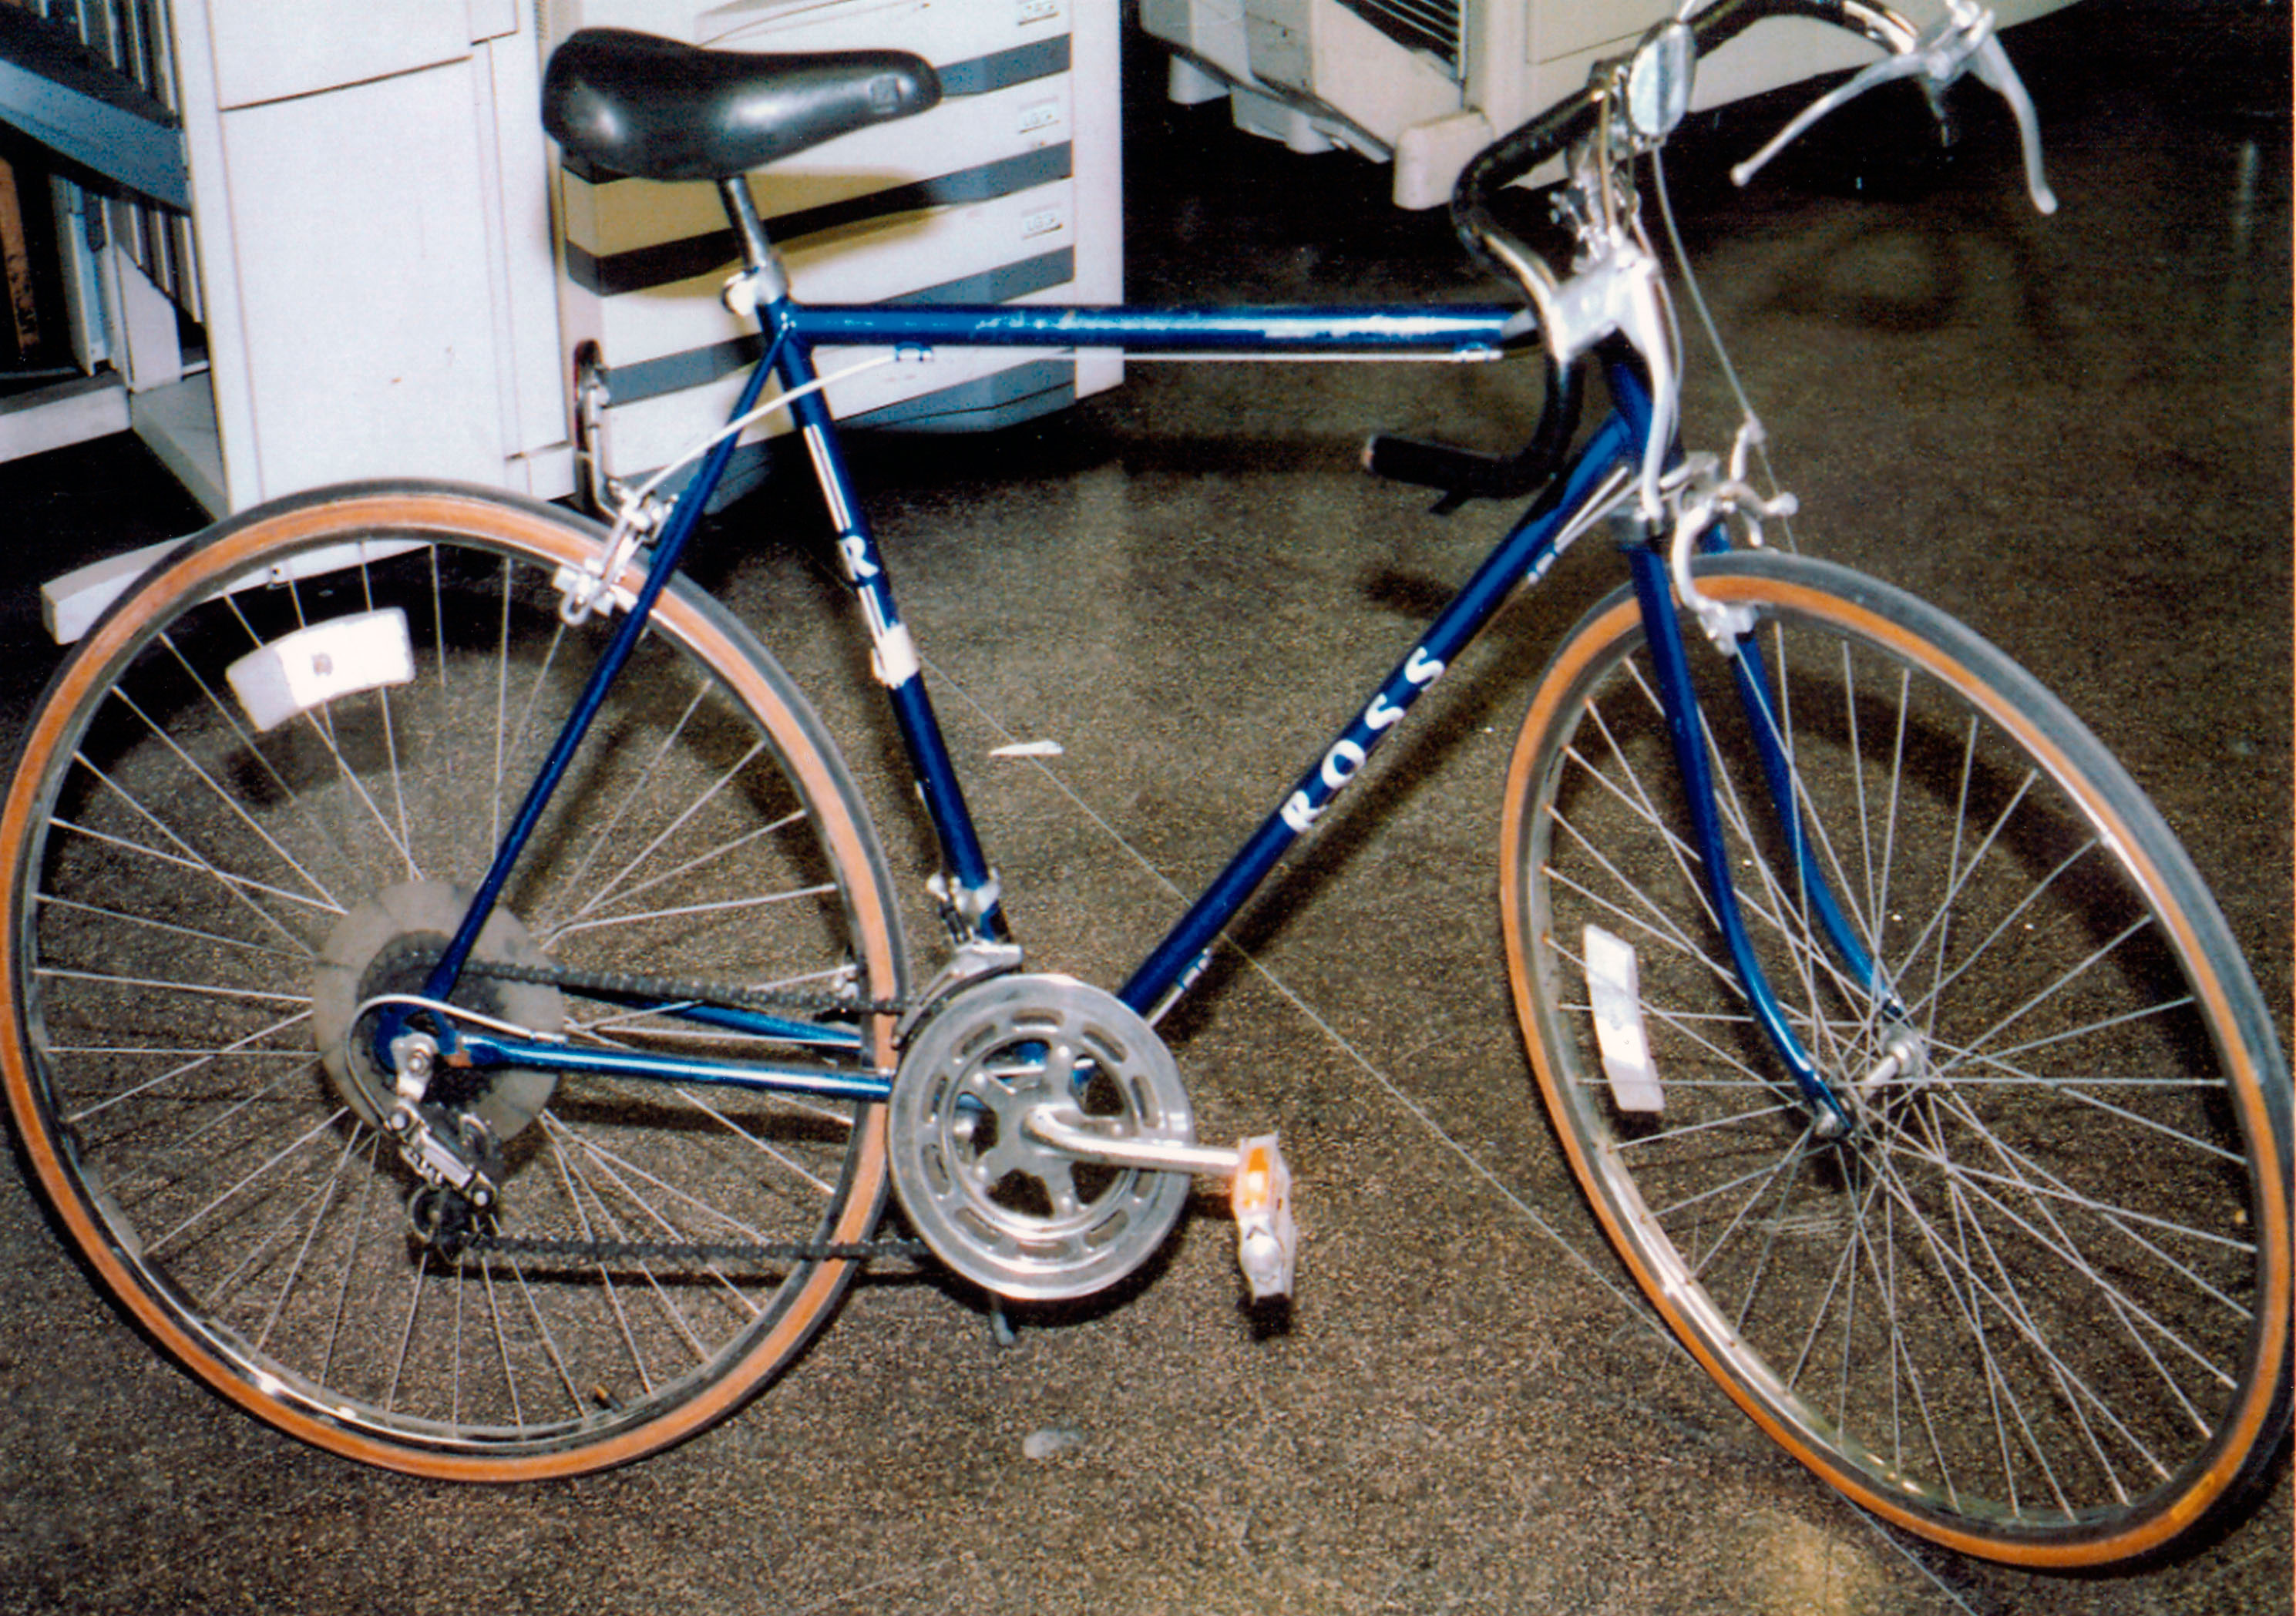 Bicycle Used by Suspect in 2008 Times Square Bombing Attack